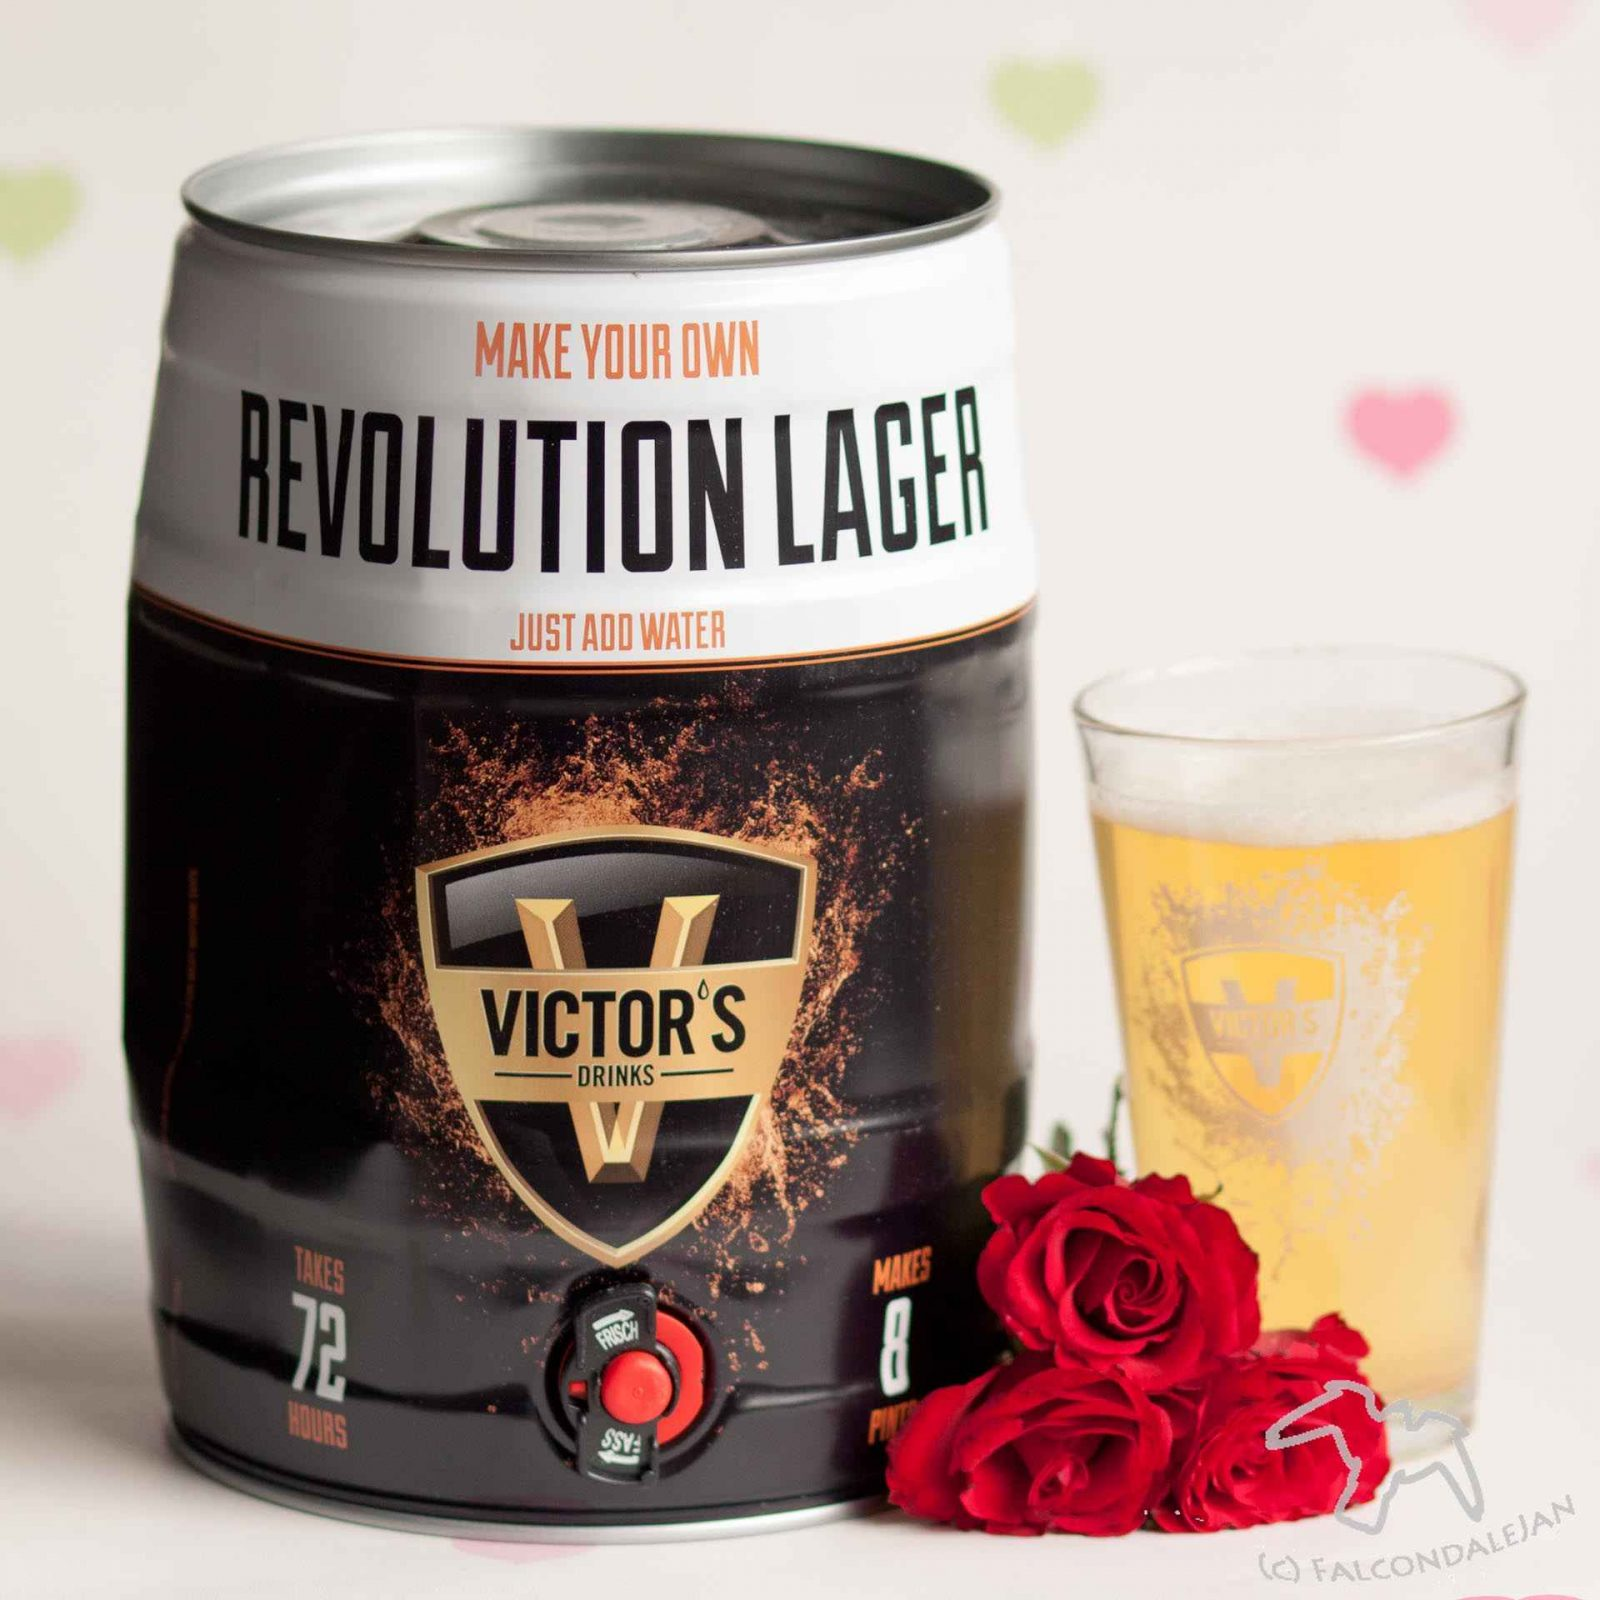 Revolution lager making kit from Find me a gift with a pint of lager, roses and hearts. Boozy Valentine's Gift Guide and Drinks Review on Falcondale Life blog. Unusual alcohol and gifts for drinkers on Valentine's day. Get something for him or her which is more interesting that just chocolate and wine. On test: Liqueurs, whisky, brewing kit, drinking game. Boozy gifts reviewed by FalcondaleJan.